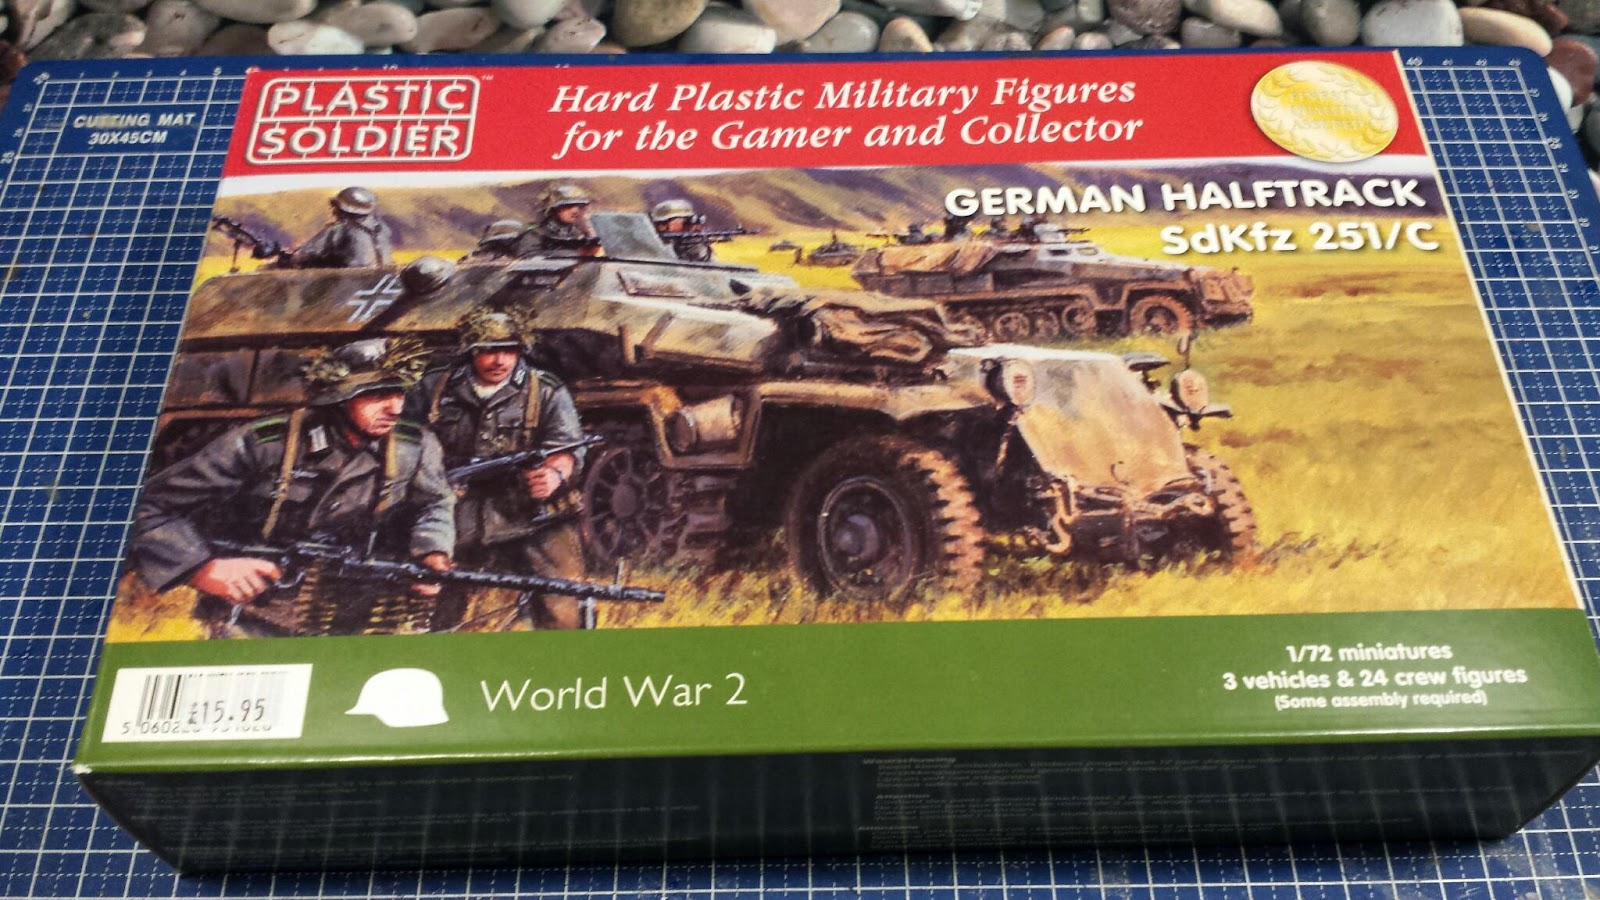 Review: 1:72 SdKfz 251/C Halftrack by Plastic Soldier Company